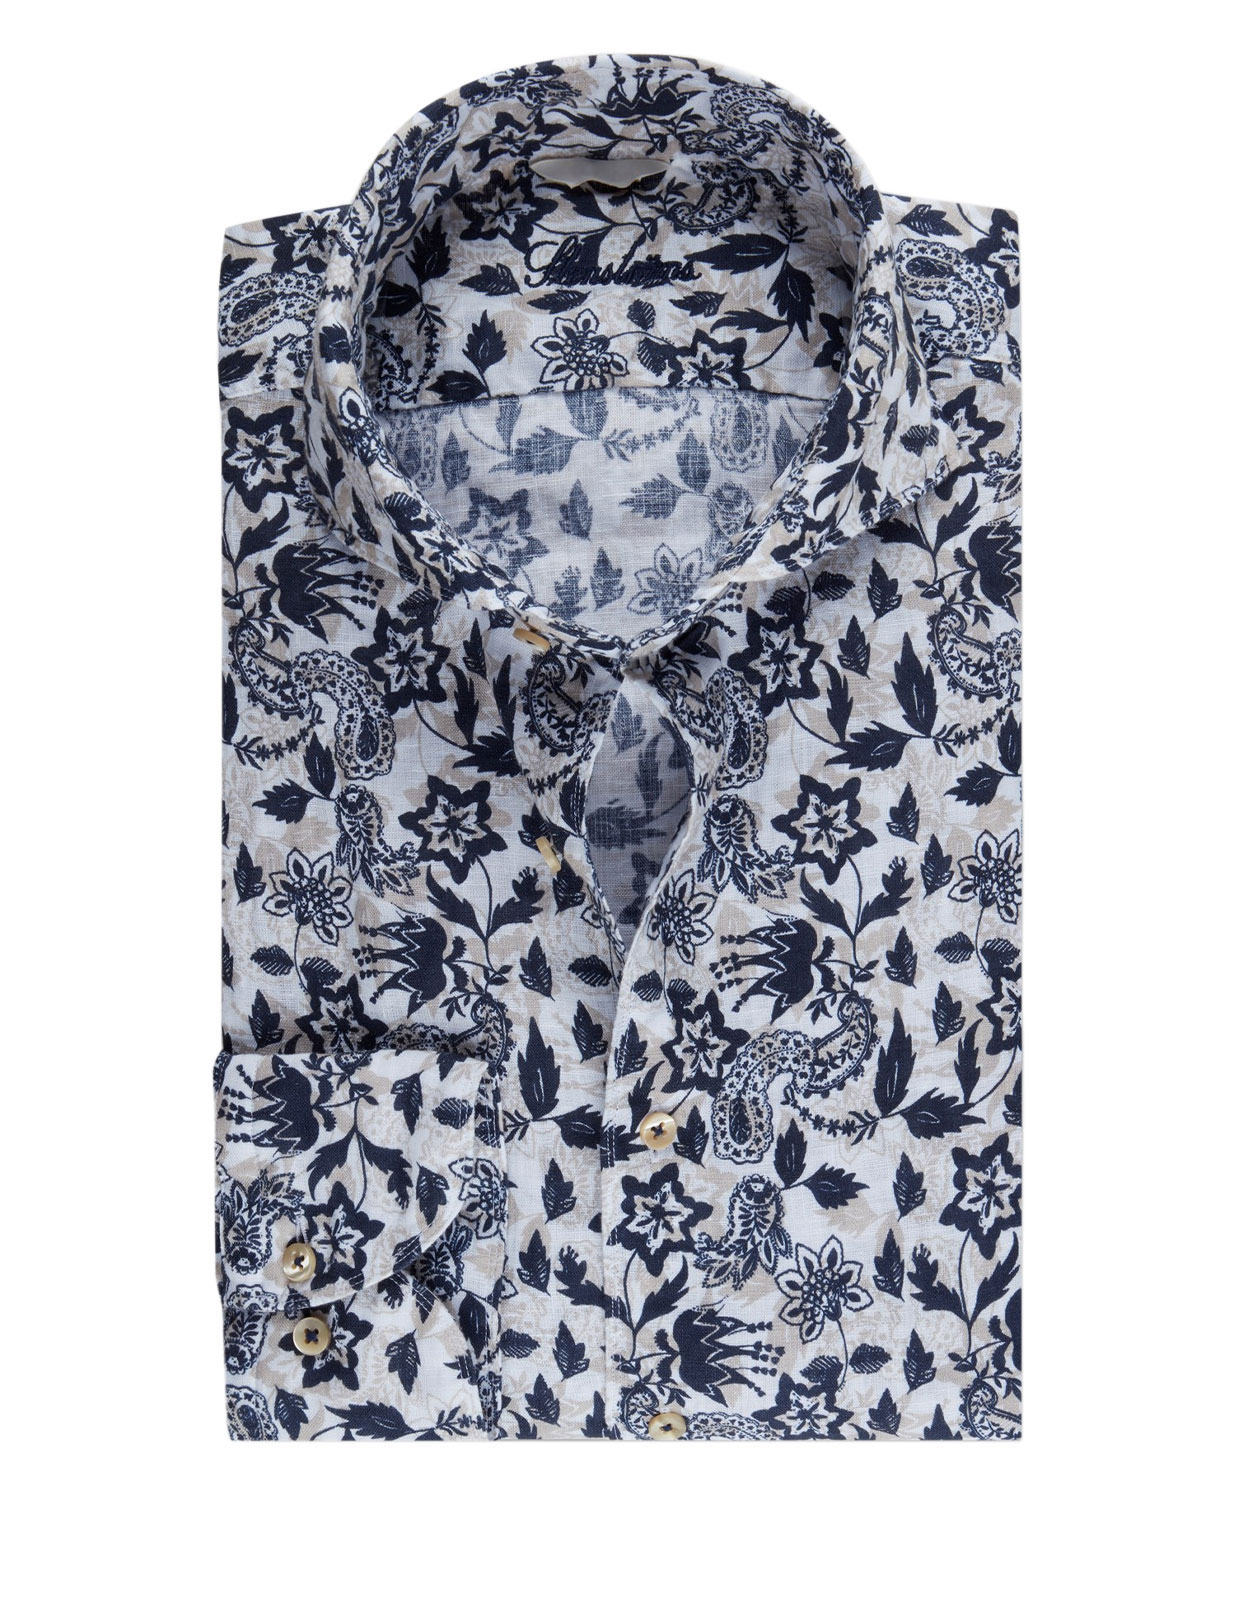 Slimline Shirt Flower Print Linen Blue/White